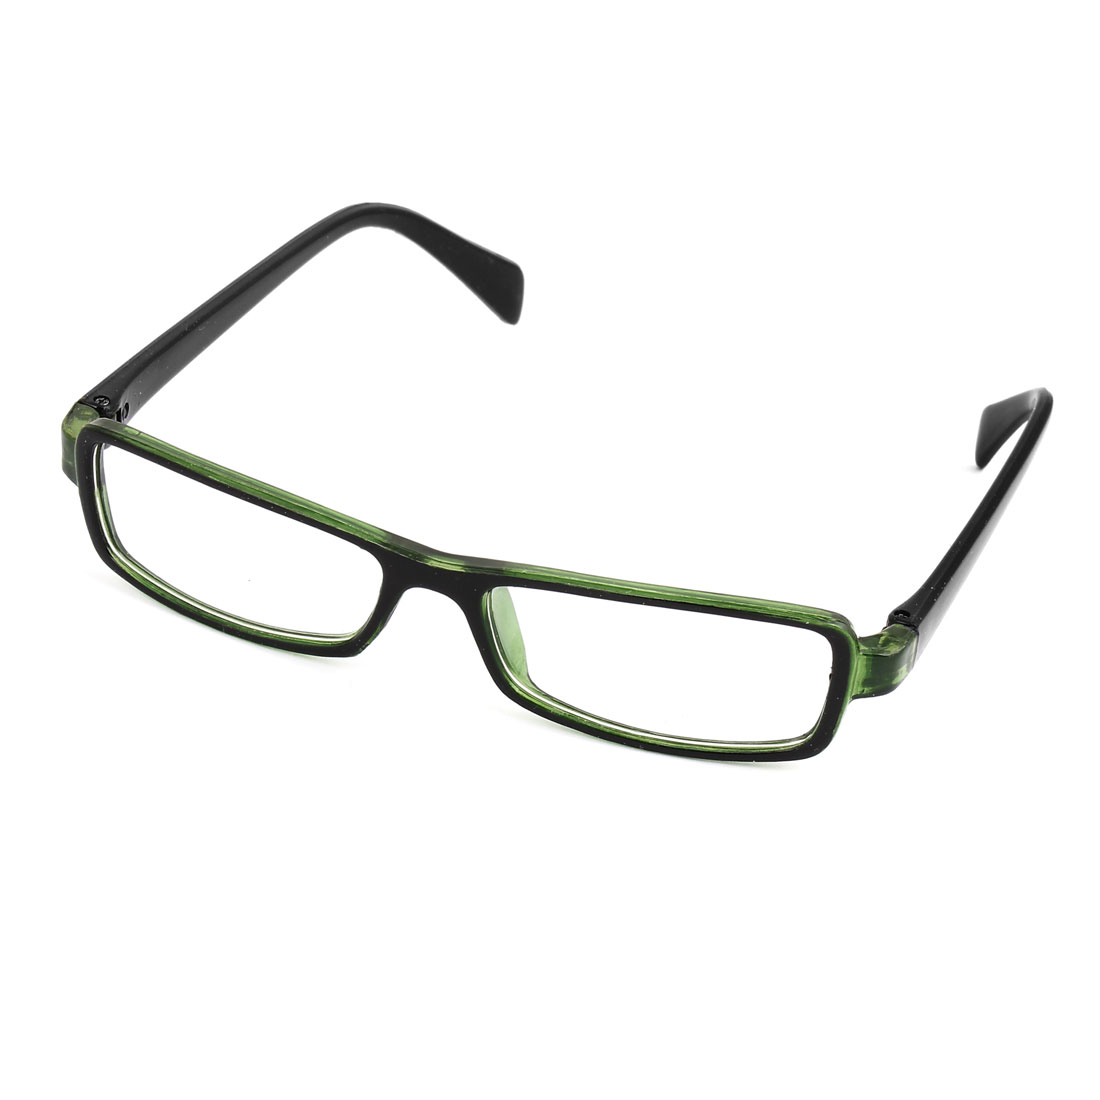 Unisex Plastic Arms Black Green Single Bridge Clear Lens Plain Eyeglasses